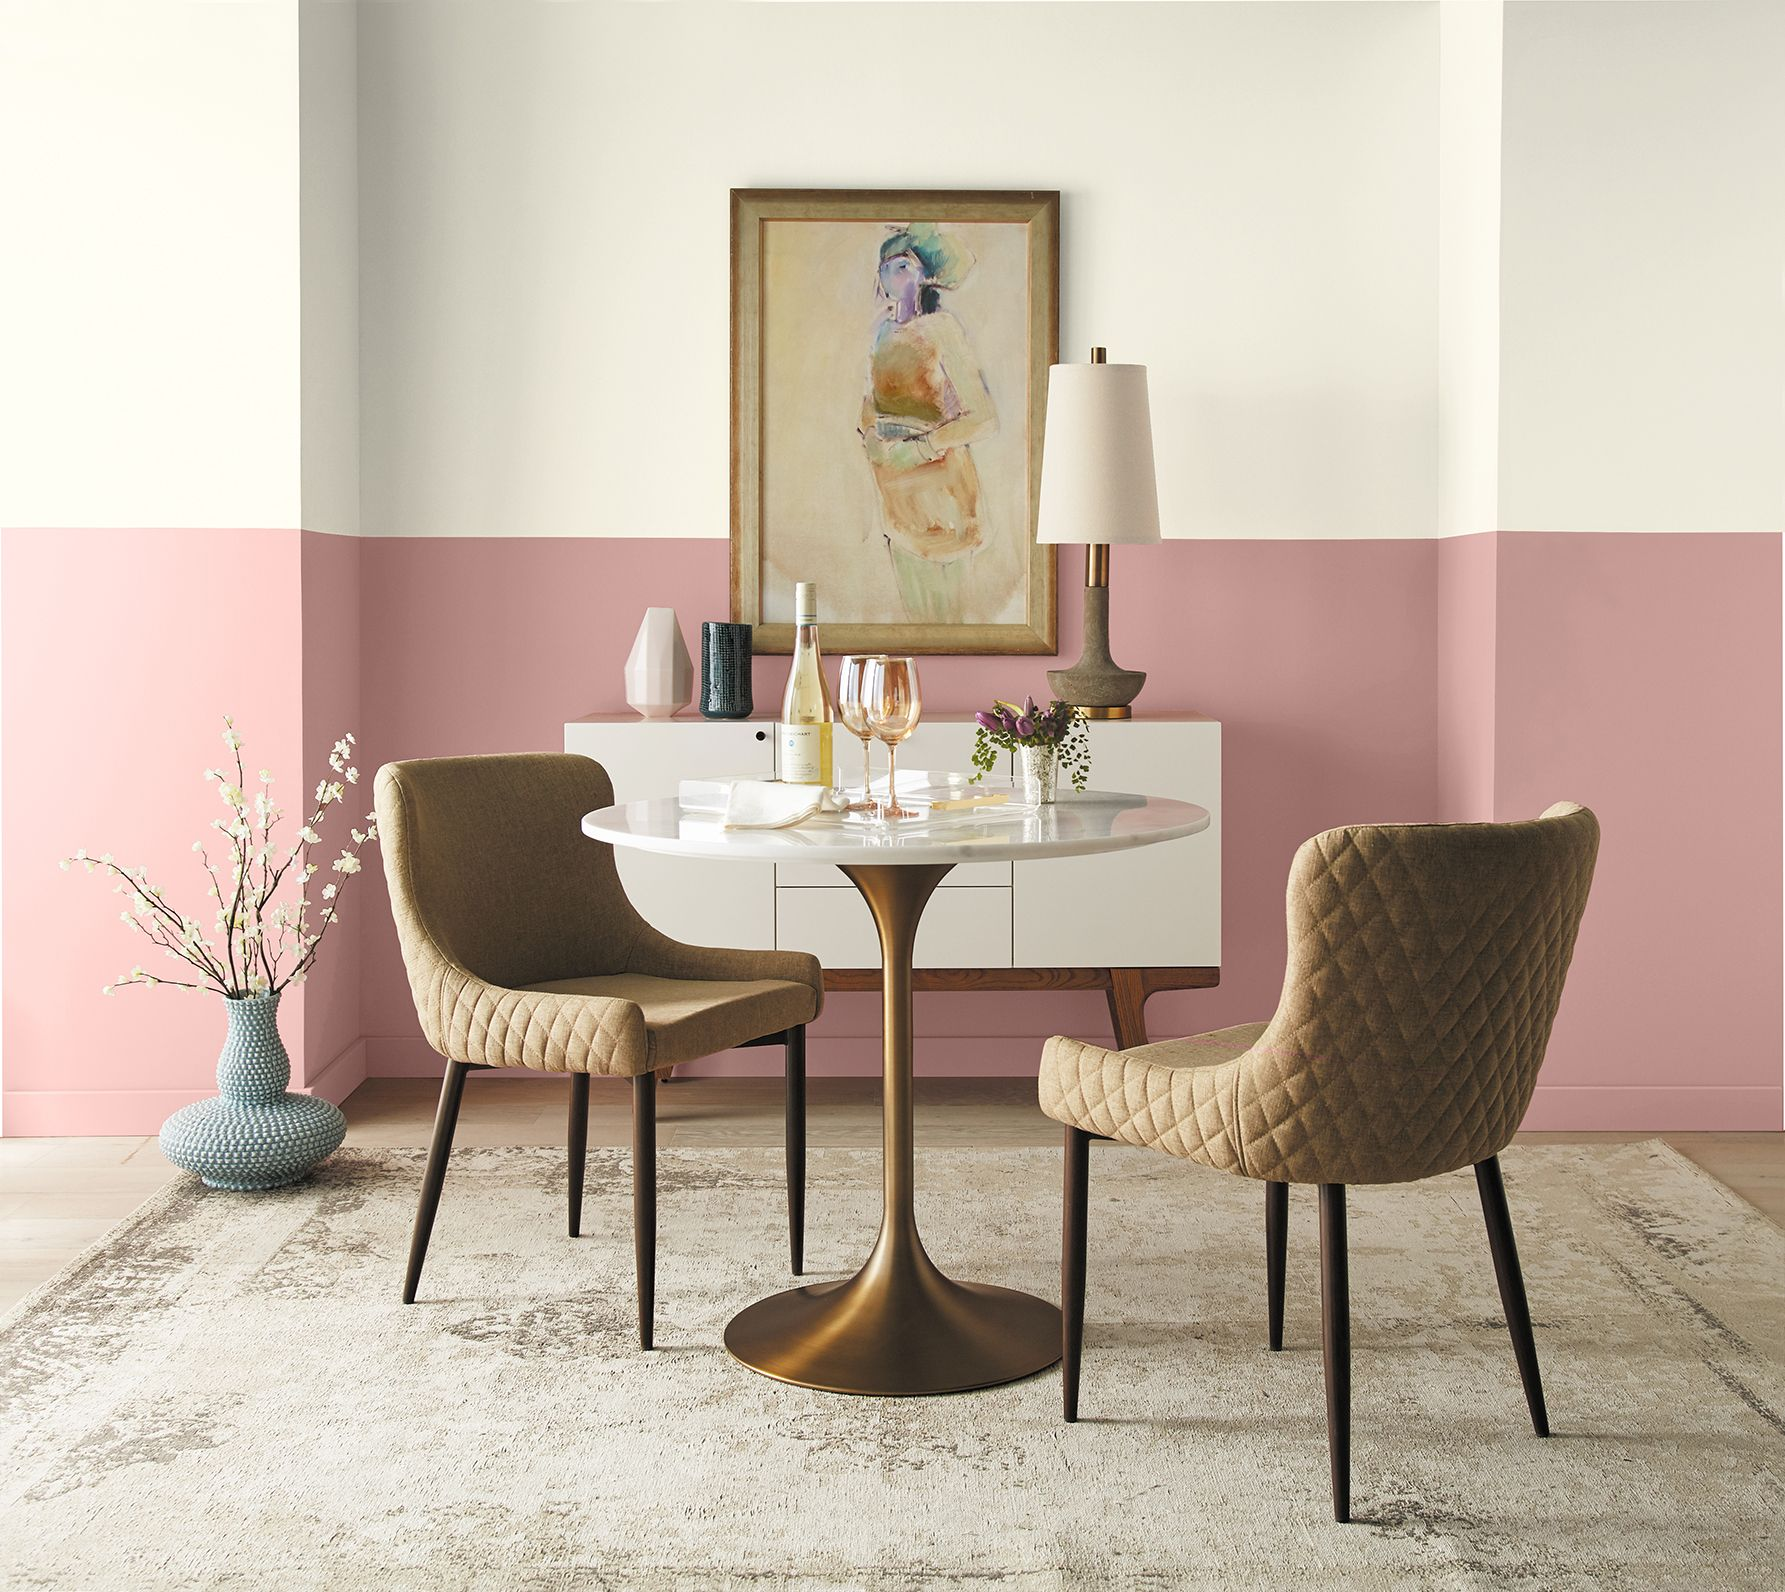 Behr Color Trends 2020 The Paint Colors Behr Wants You To Use